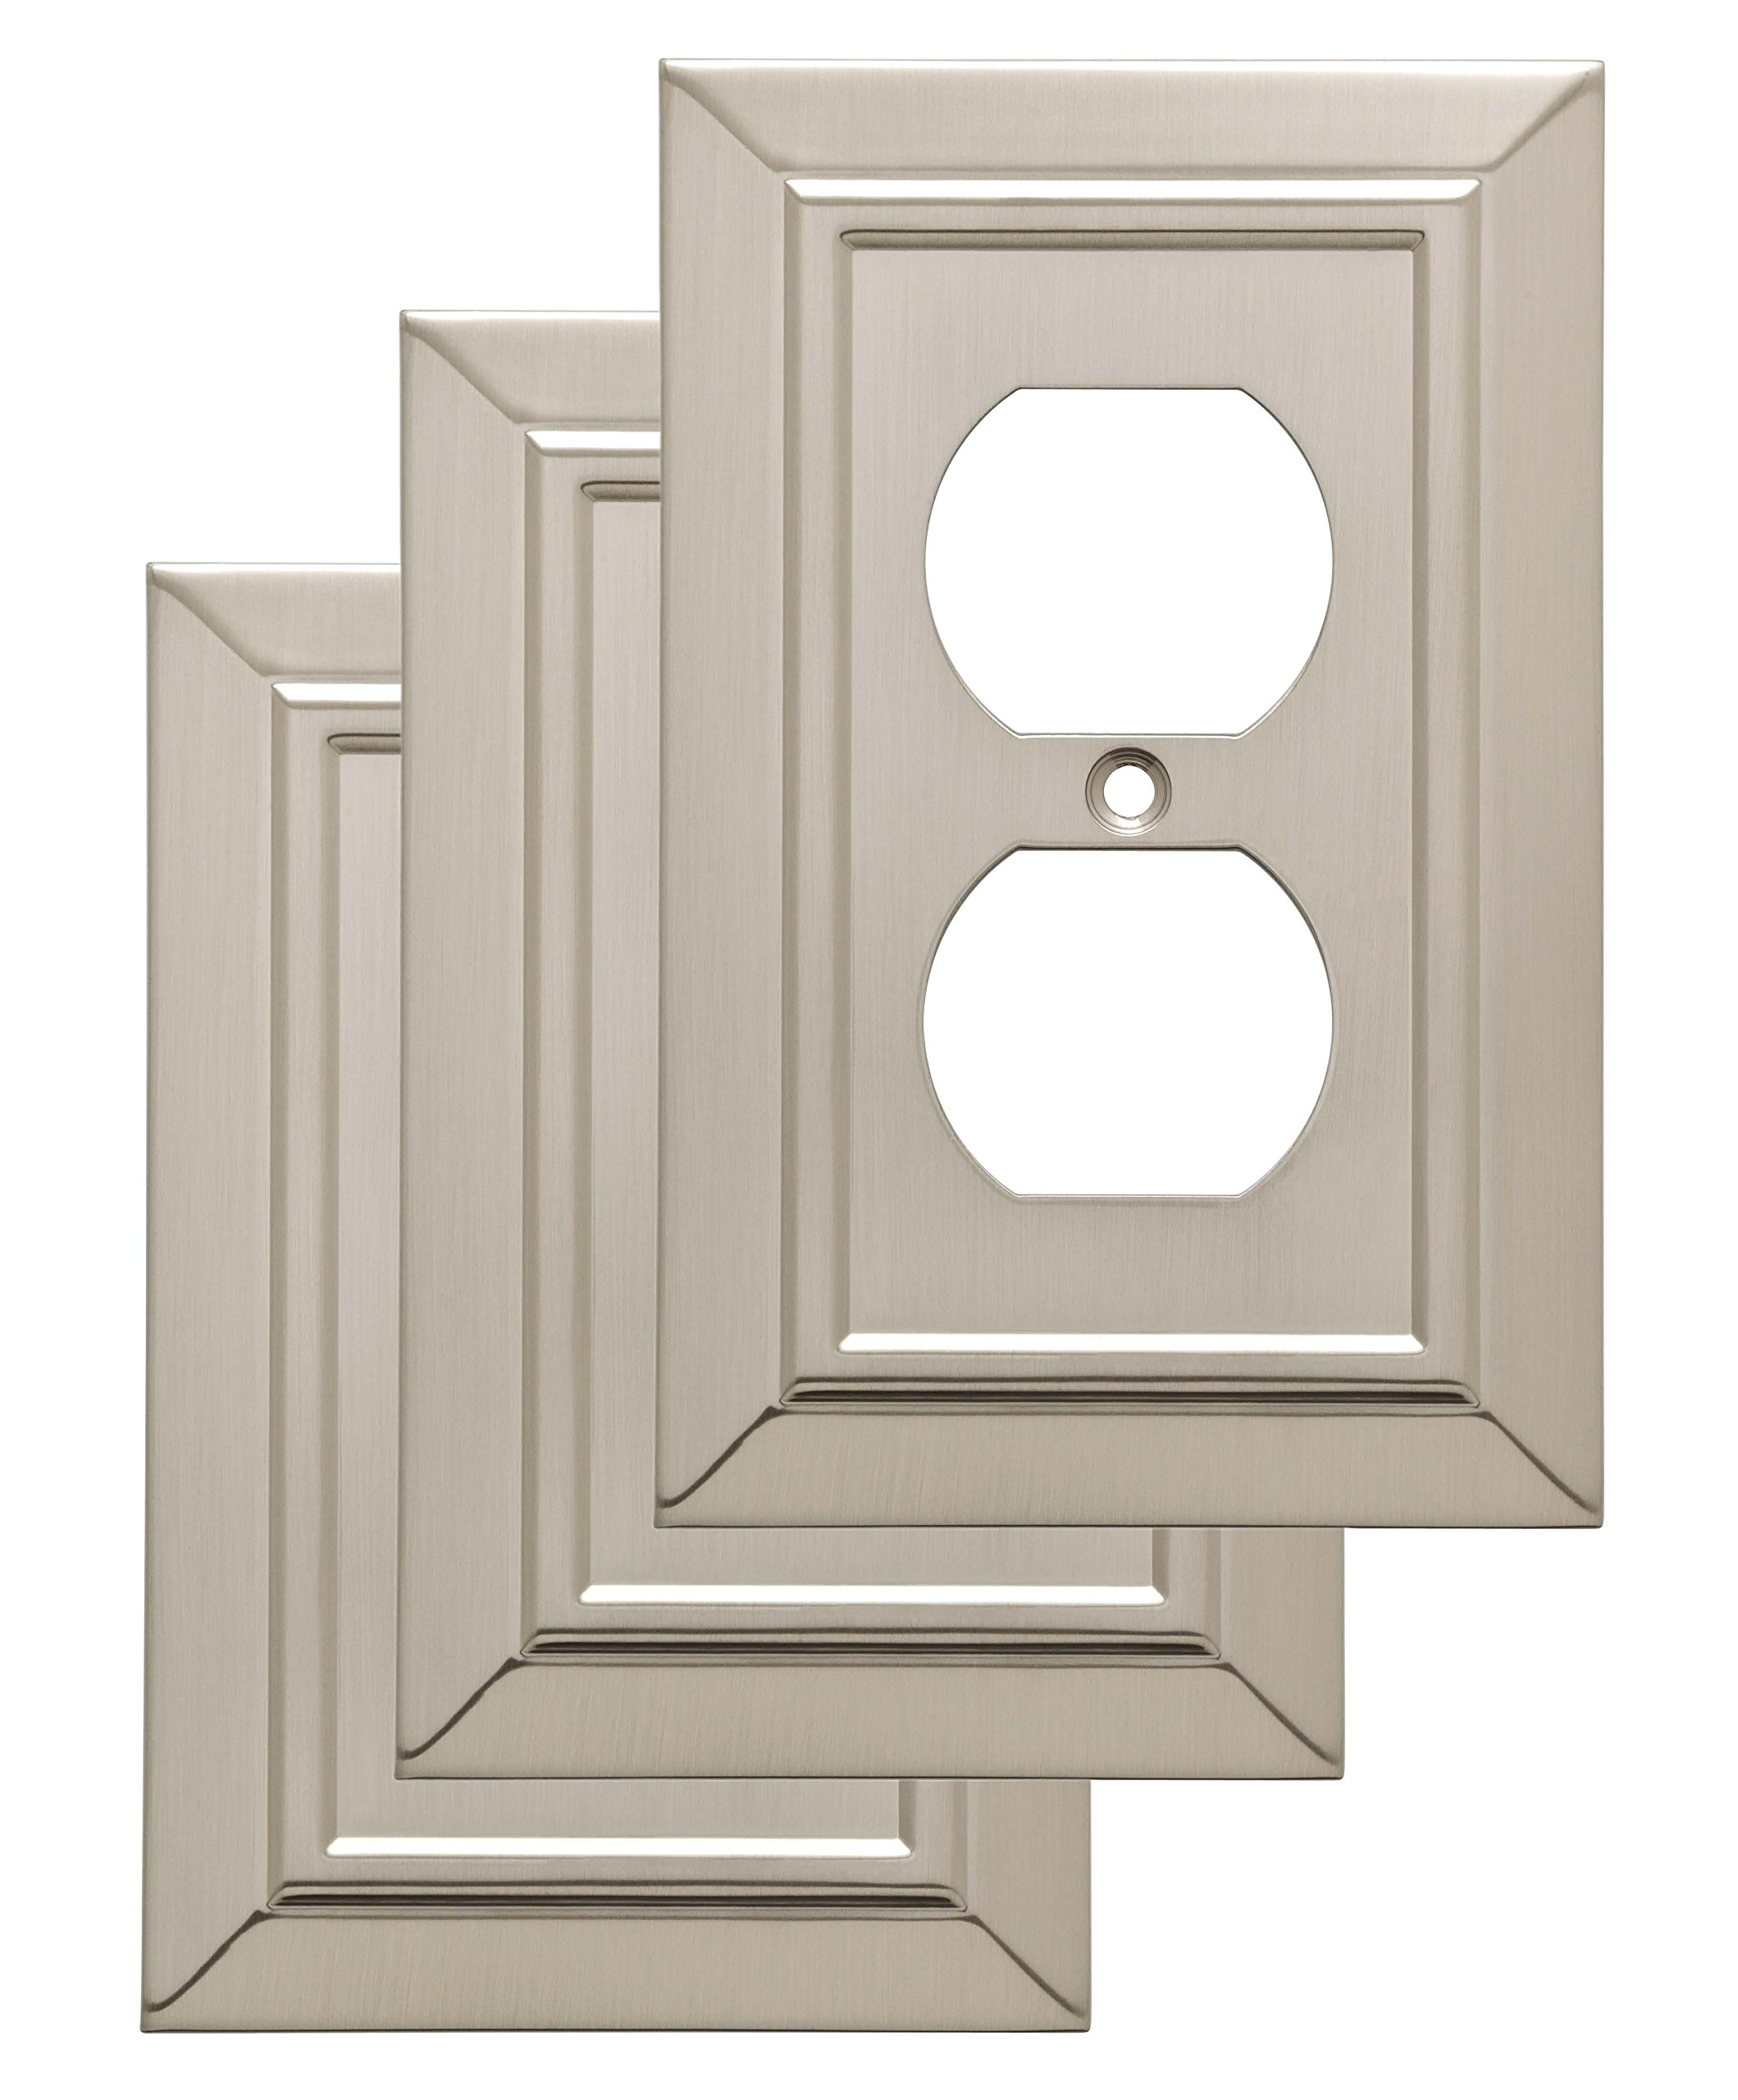 Franklin Brass W35218V-SN-C Classic Architecture Single Duplex Wall Plate/Switch Plate/Cover (3 Pack), Satin Nickel by Franklin Brass